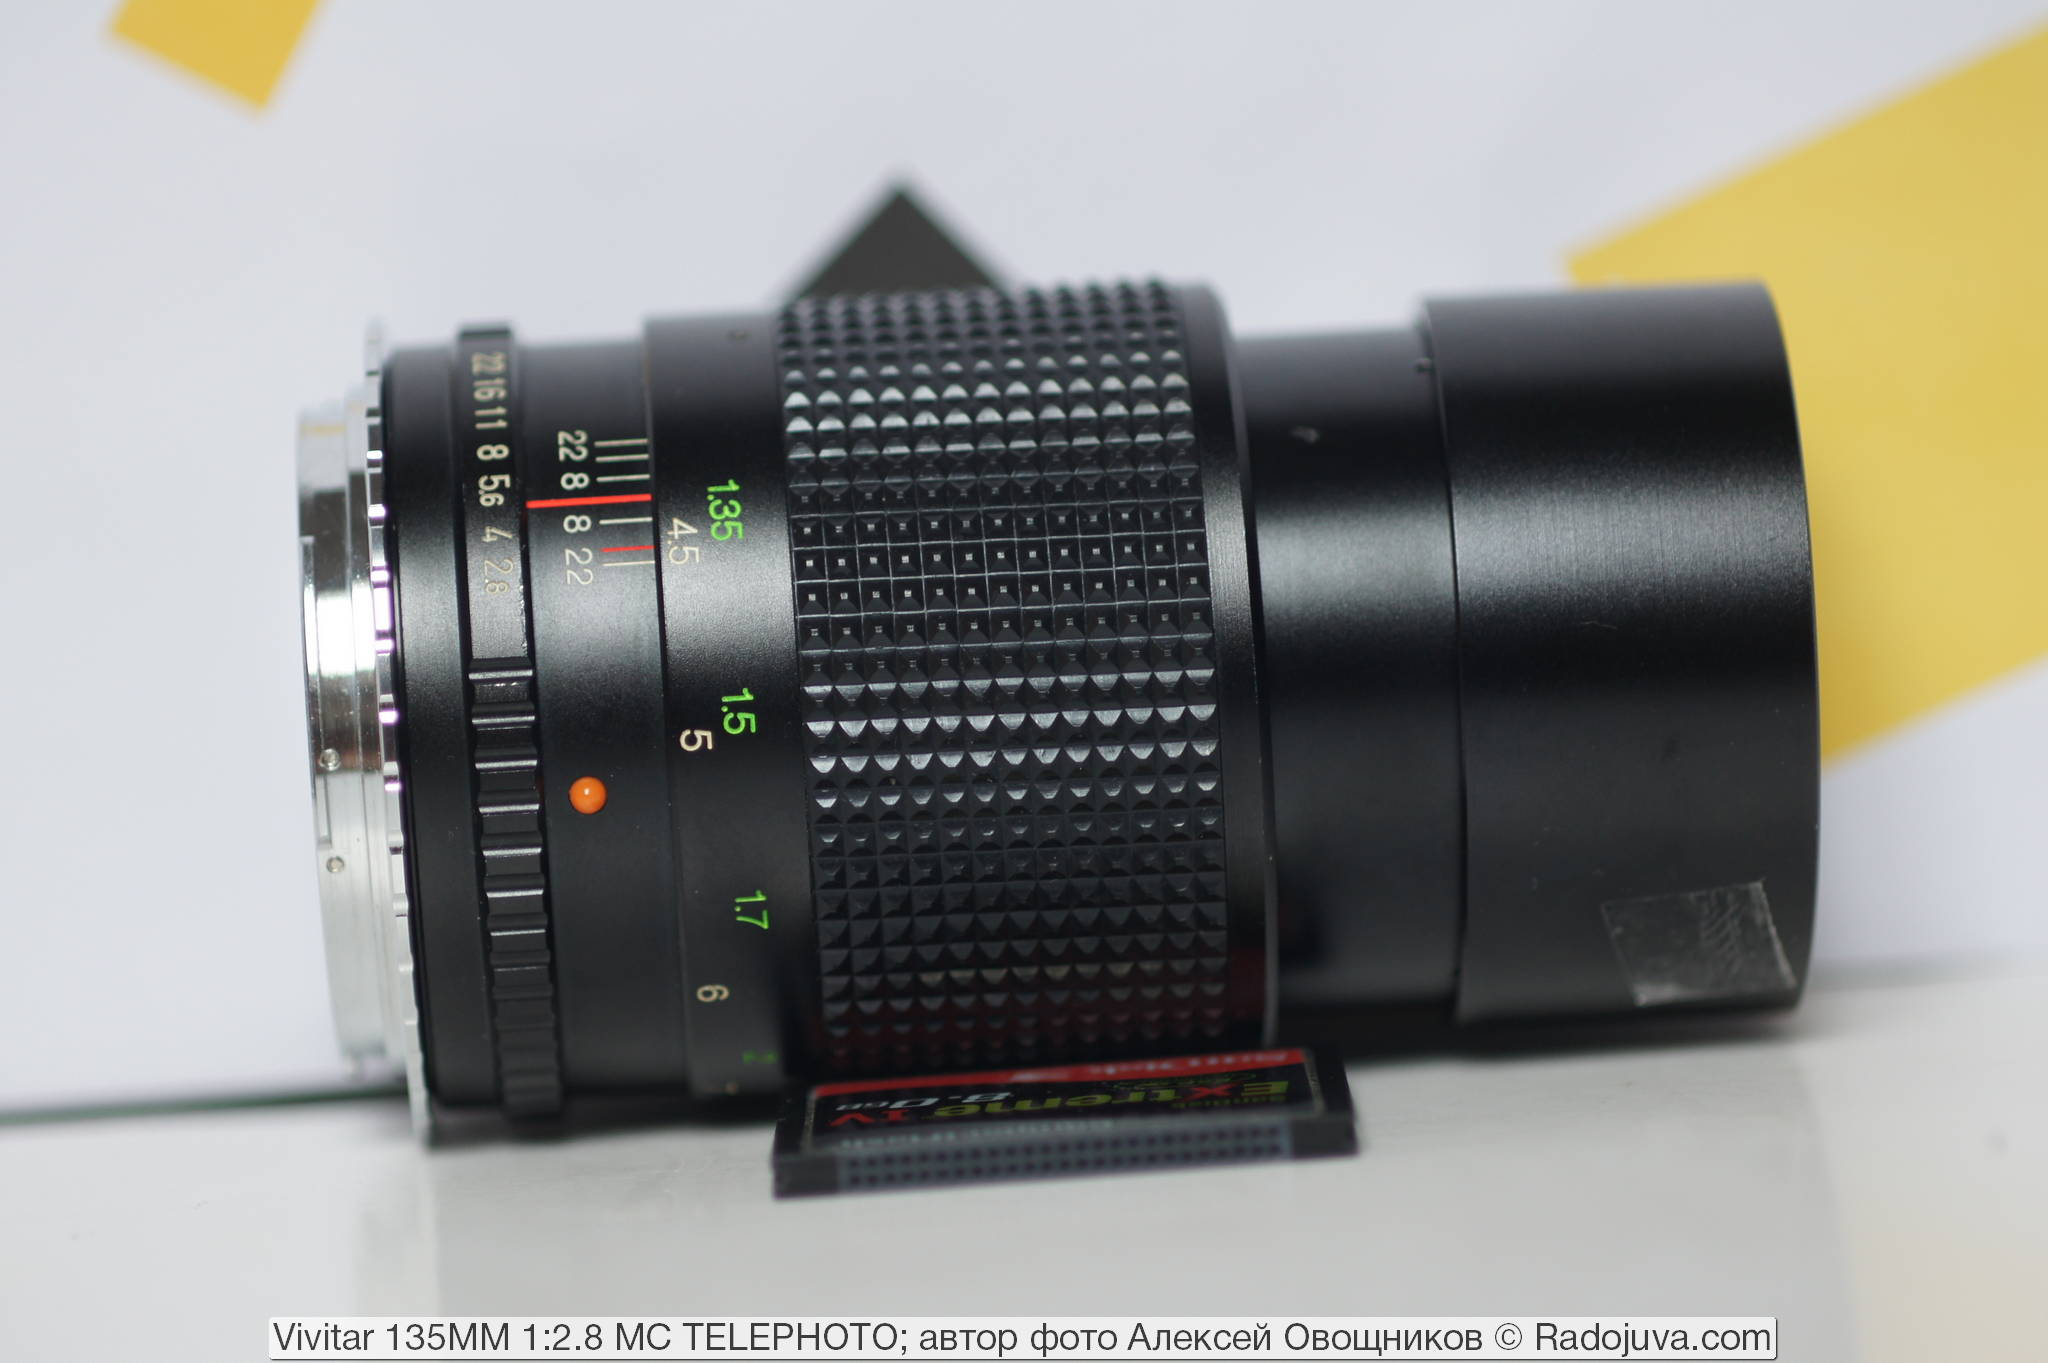 Vivitar 135MM 1:2.8 MC TELEPHOTO